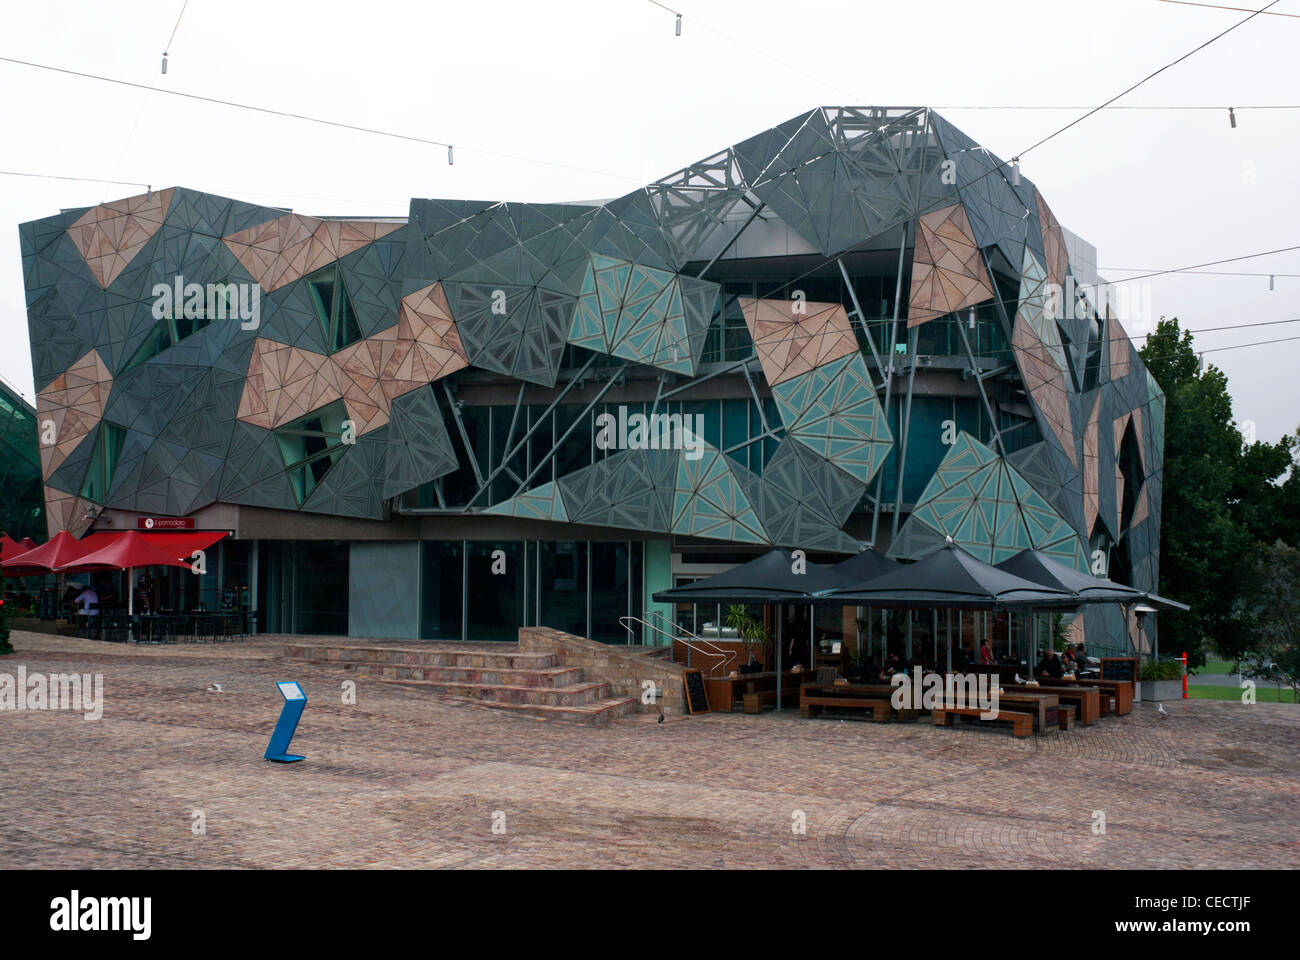 One of the quirky buildings in Federation Square, Melbourne - Stock Image